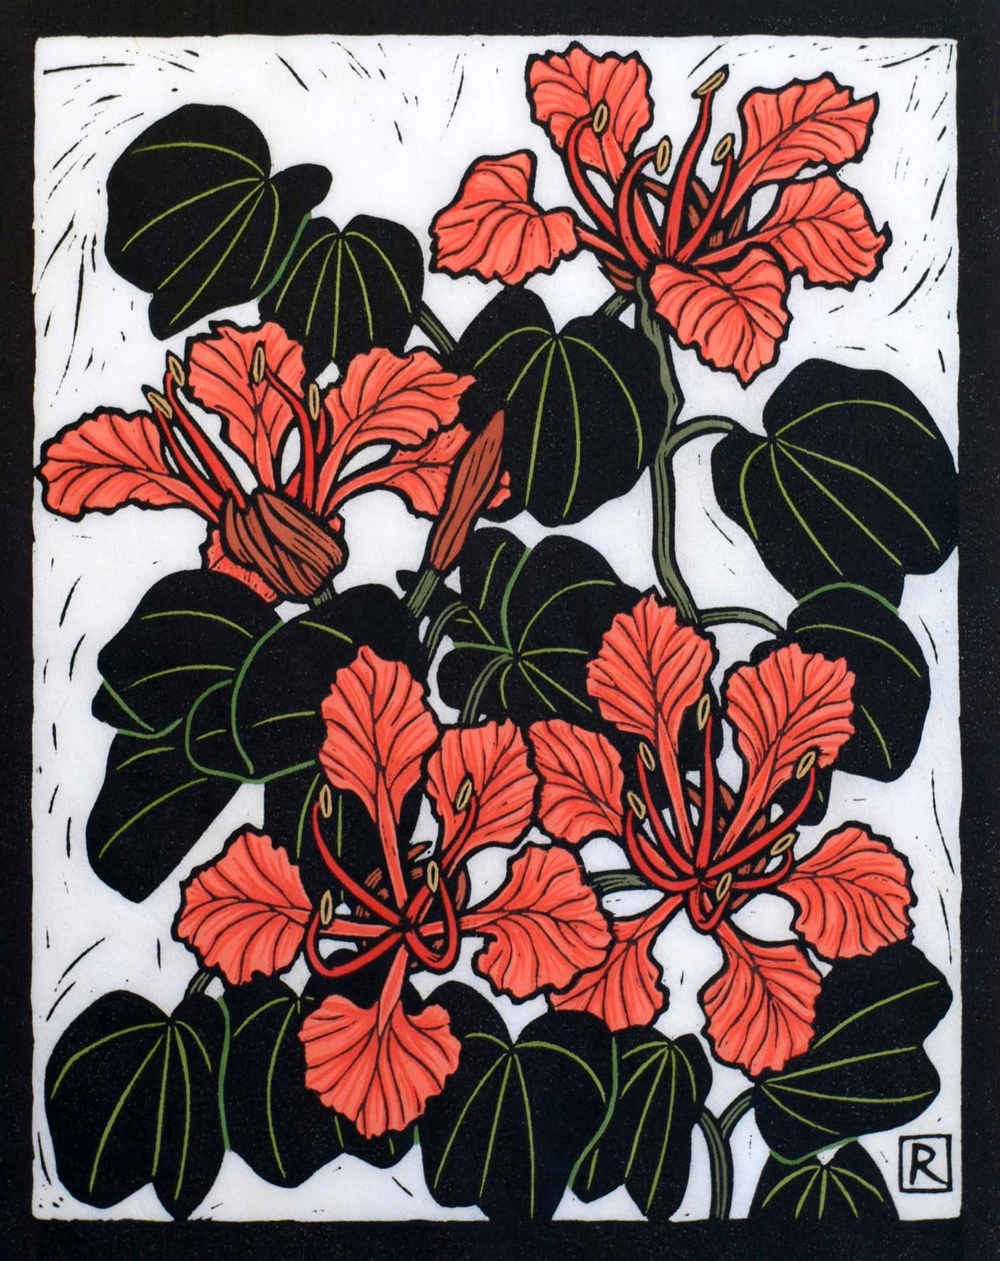 BAUHINIA                                                   28 X 22 CM    EDITION OF 50                    HAND COLOURED LINOCUT ON HANDMADE JAPANESE PAPER                $650